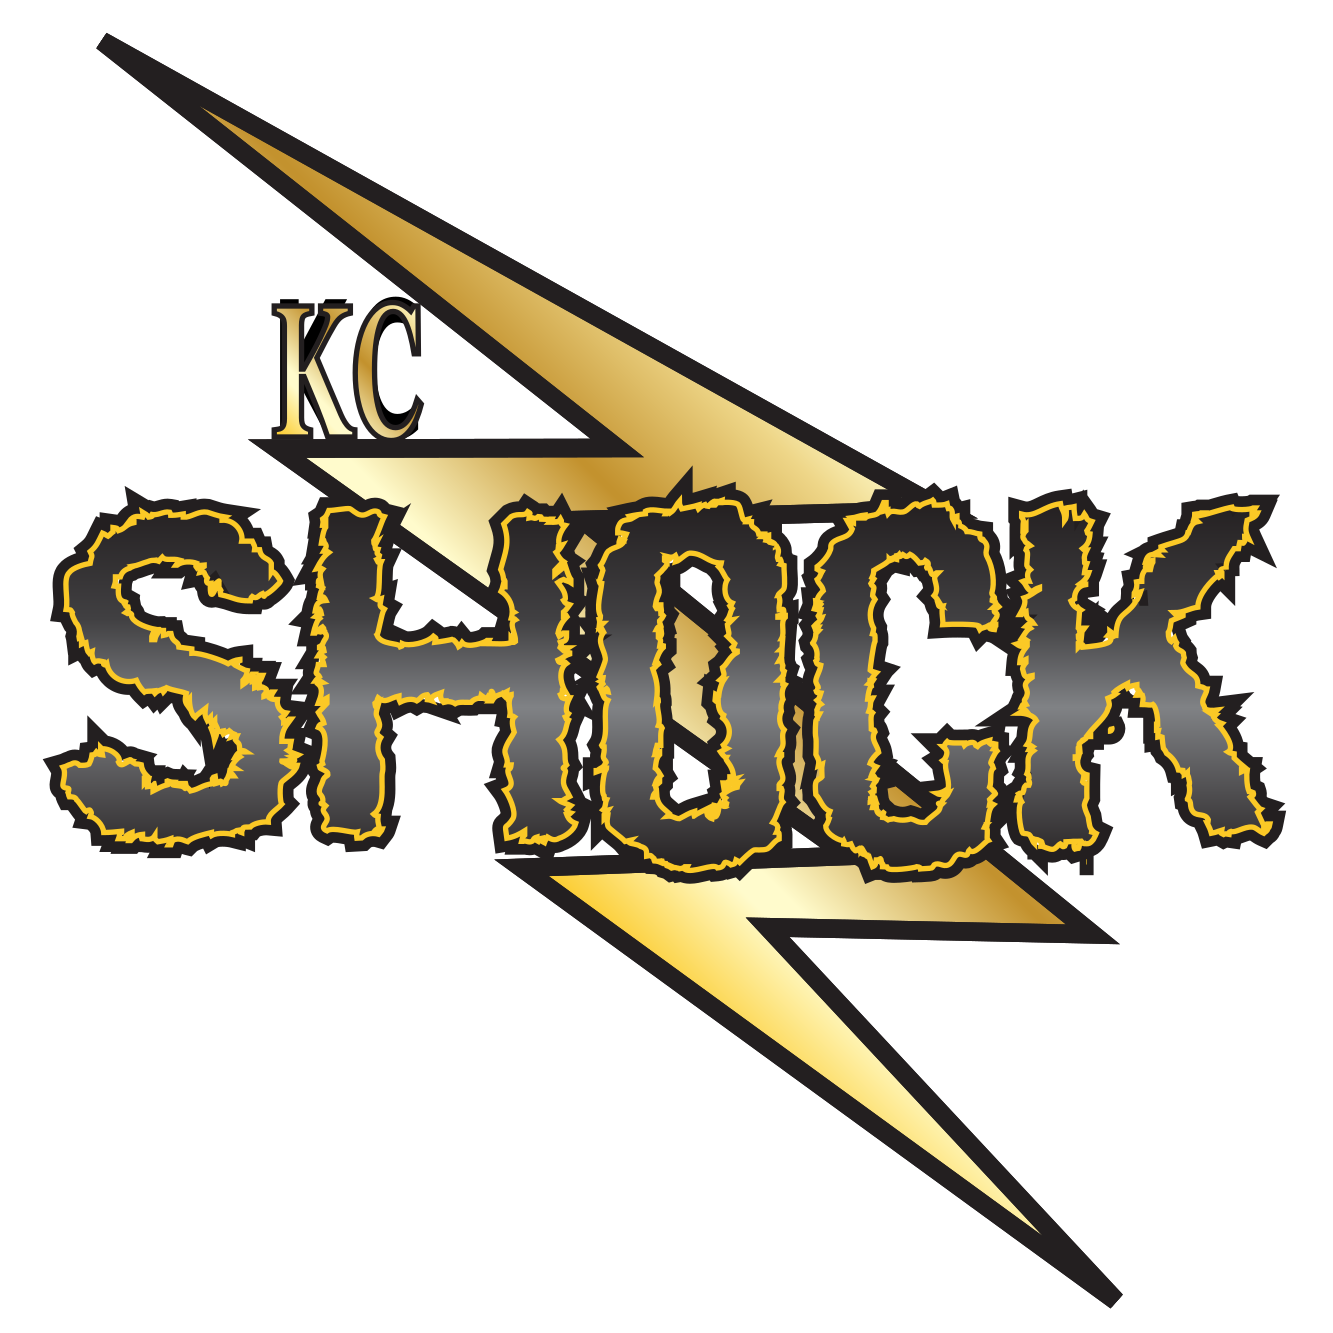 Kansas City Shock